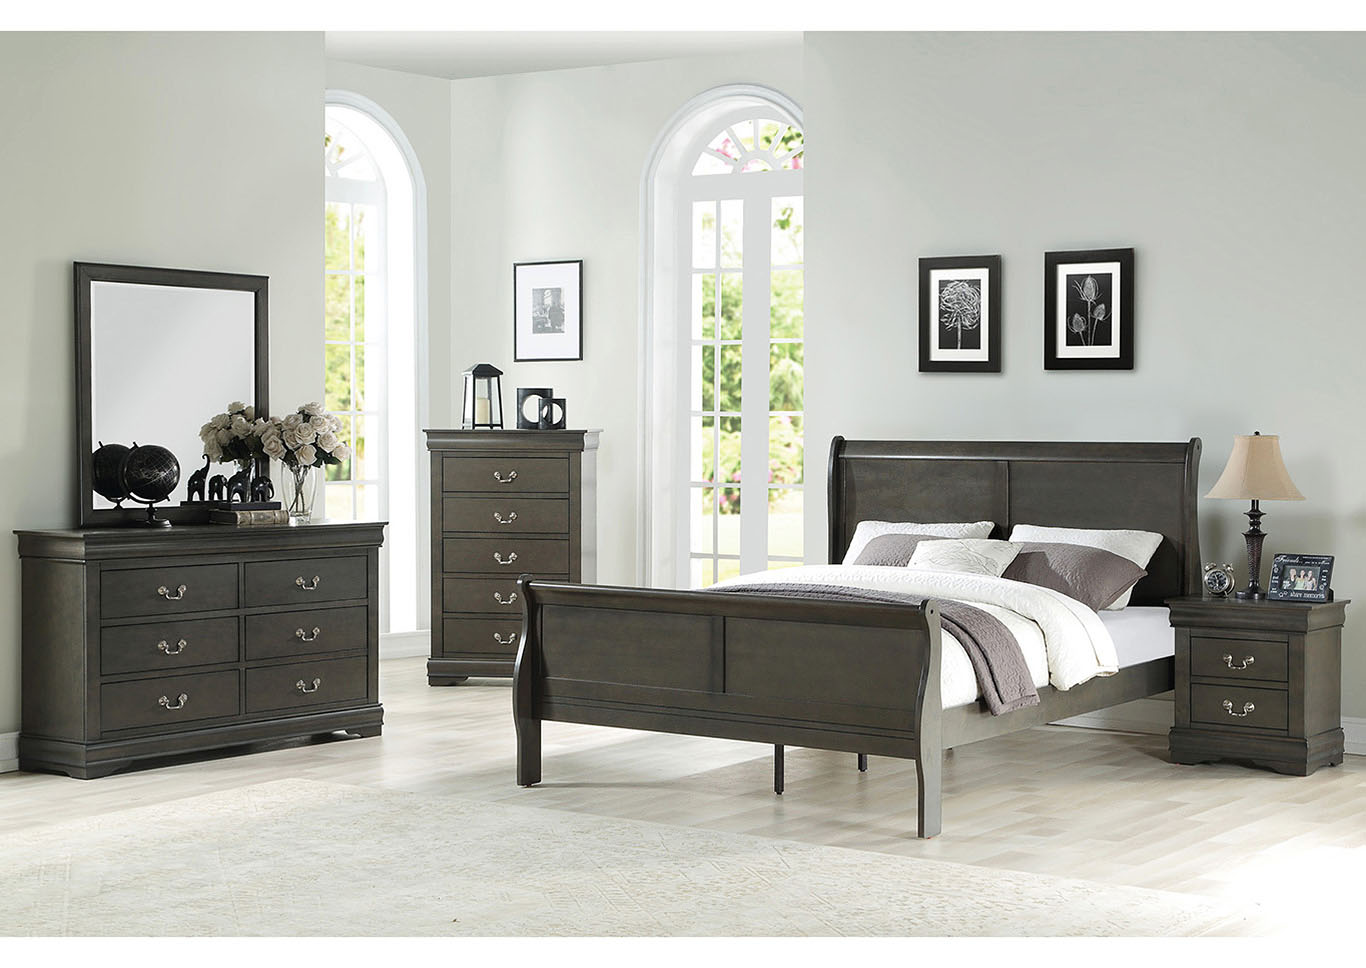 f45022f0707ec The Furniture Outlet NY Louis Philippe Dark Grey Eastern King Sleigh Bed